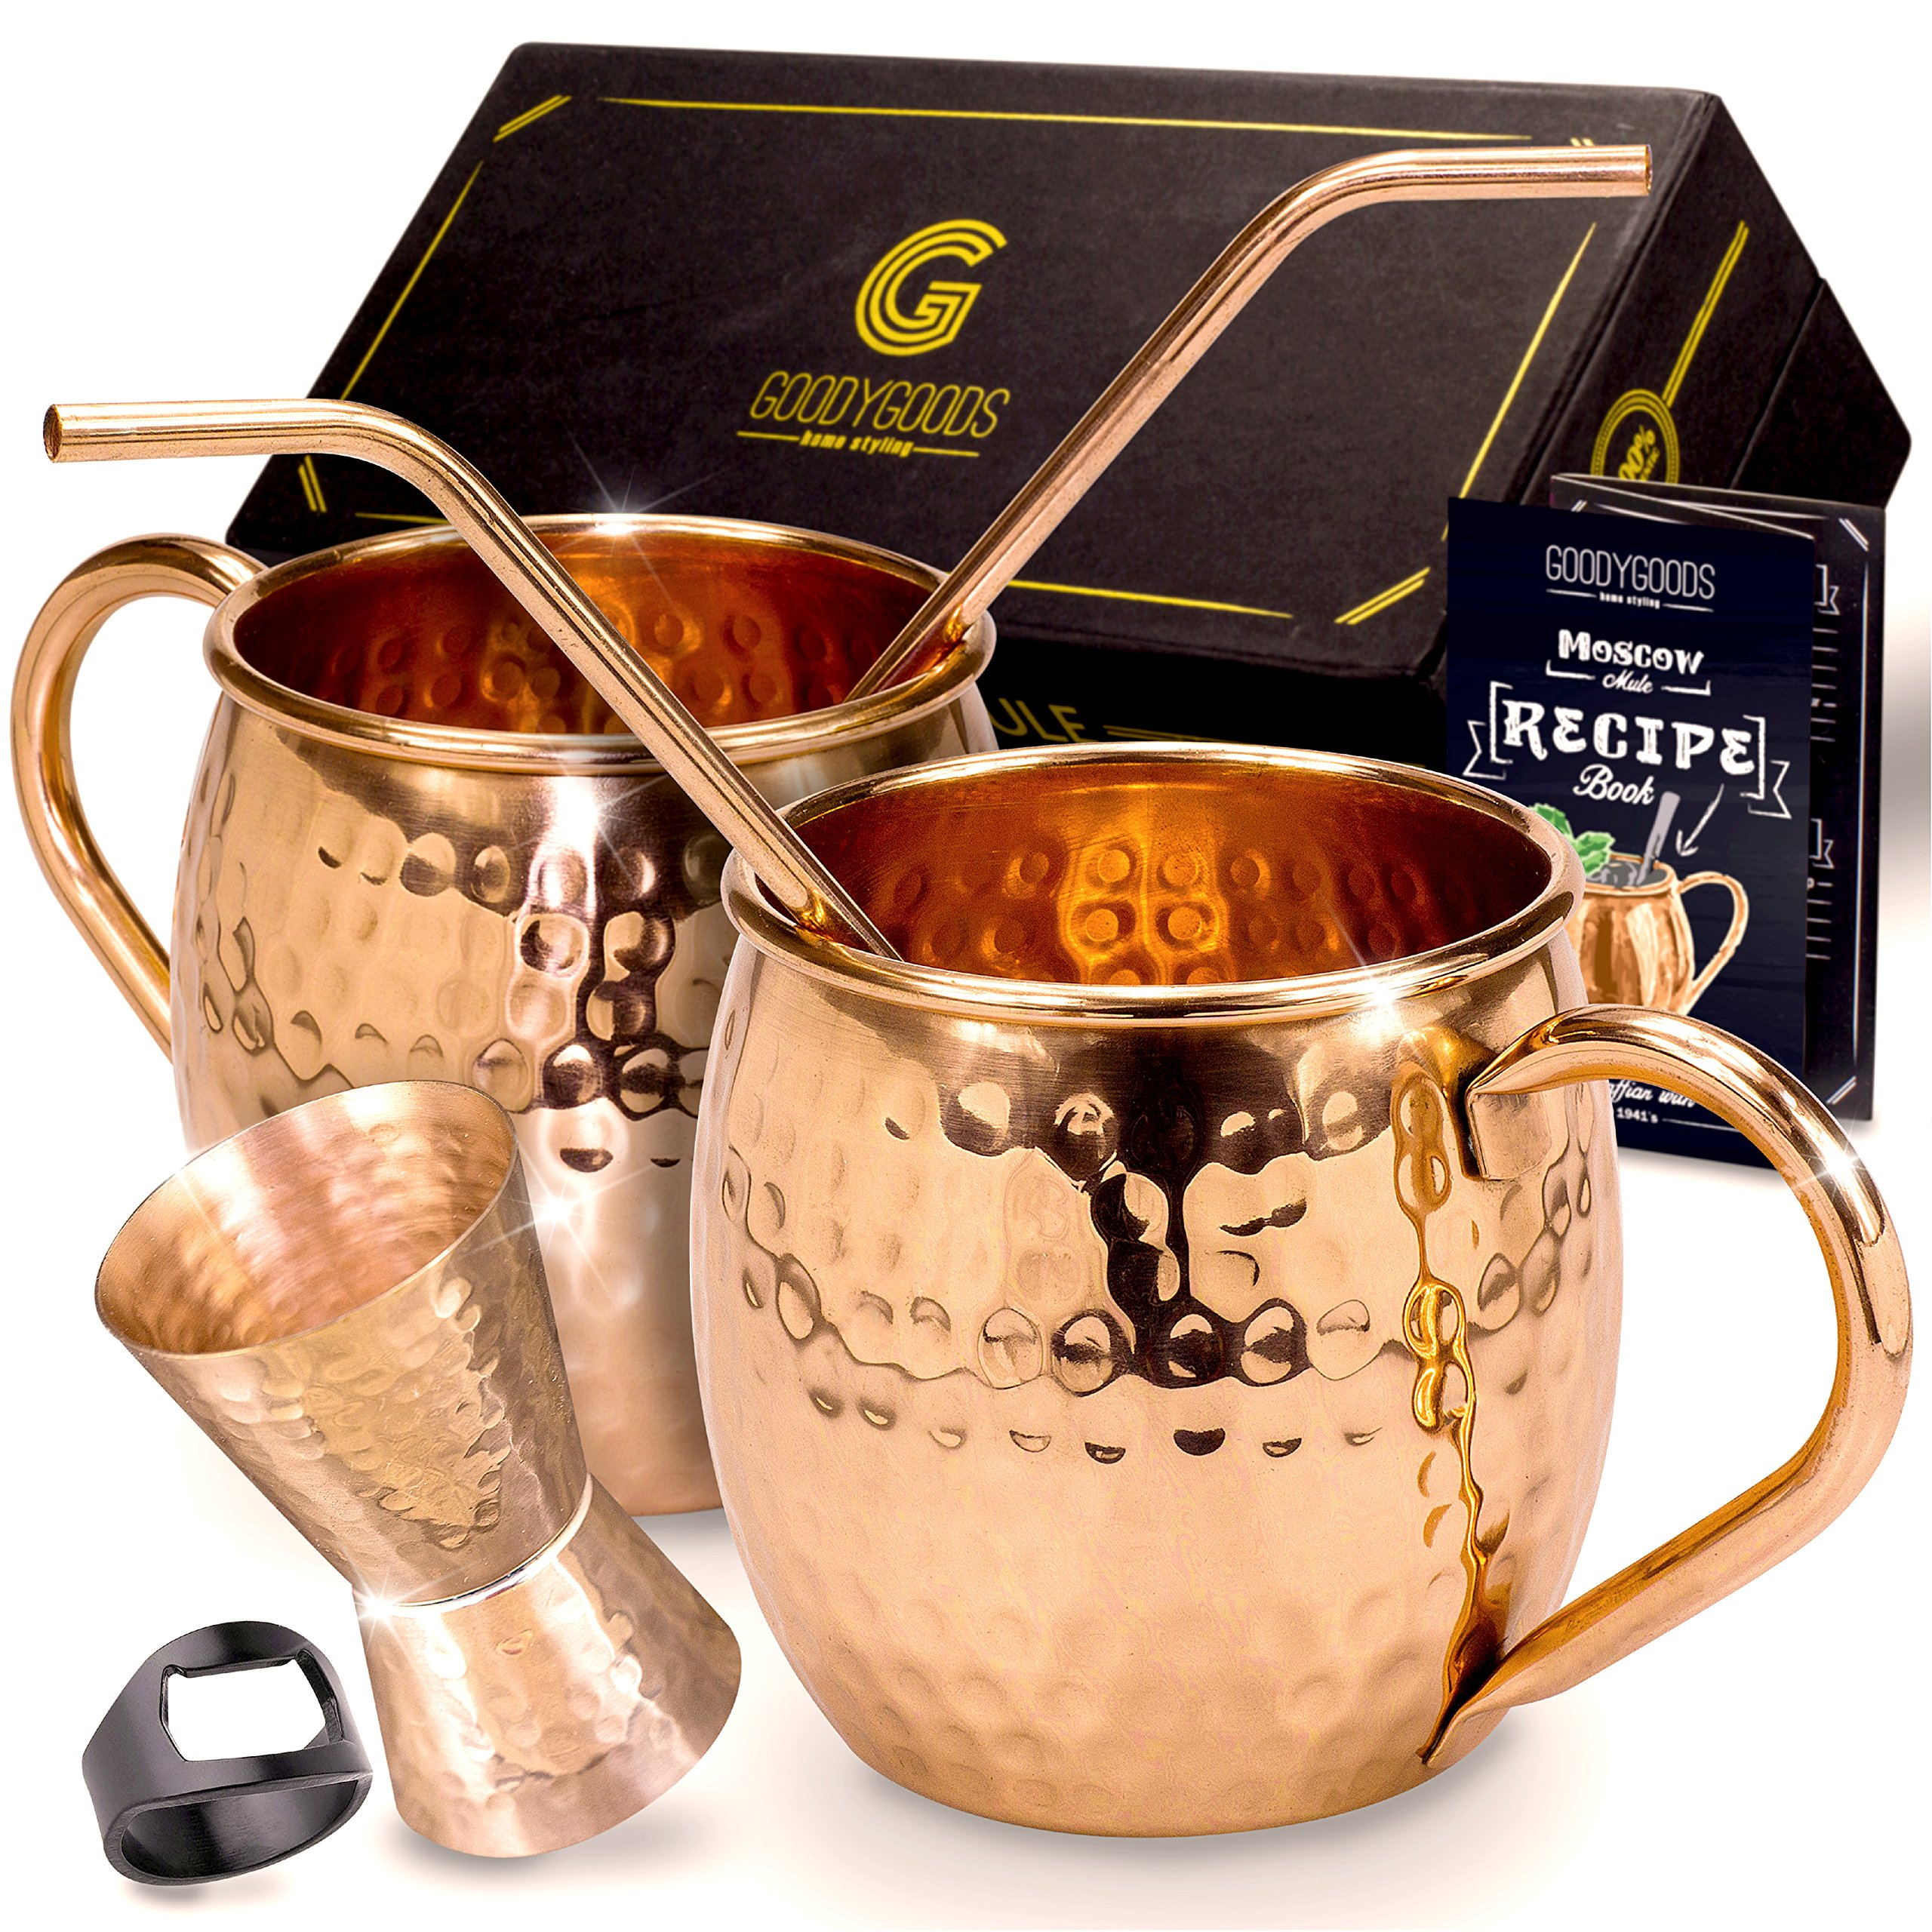 Magnificent Moscow Mule Copper Mugs: Make Any Drink Taste Much Better! 100% Pure Solid Copper His & Hers Gift Set- 2 Hammered 16 OZ Copper Caps 2 Unique Straws, Jigger & Recipe Book! (copper, 16oz)